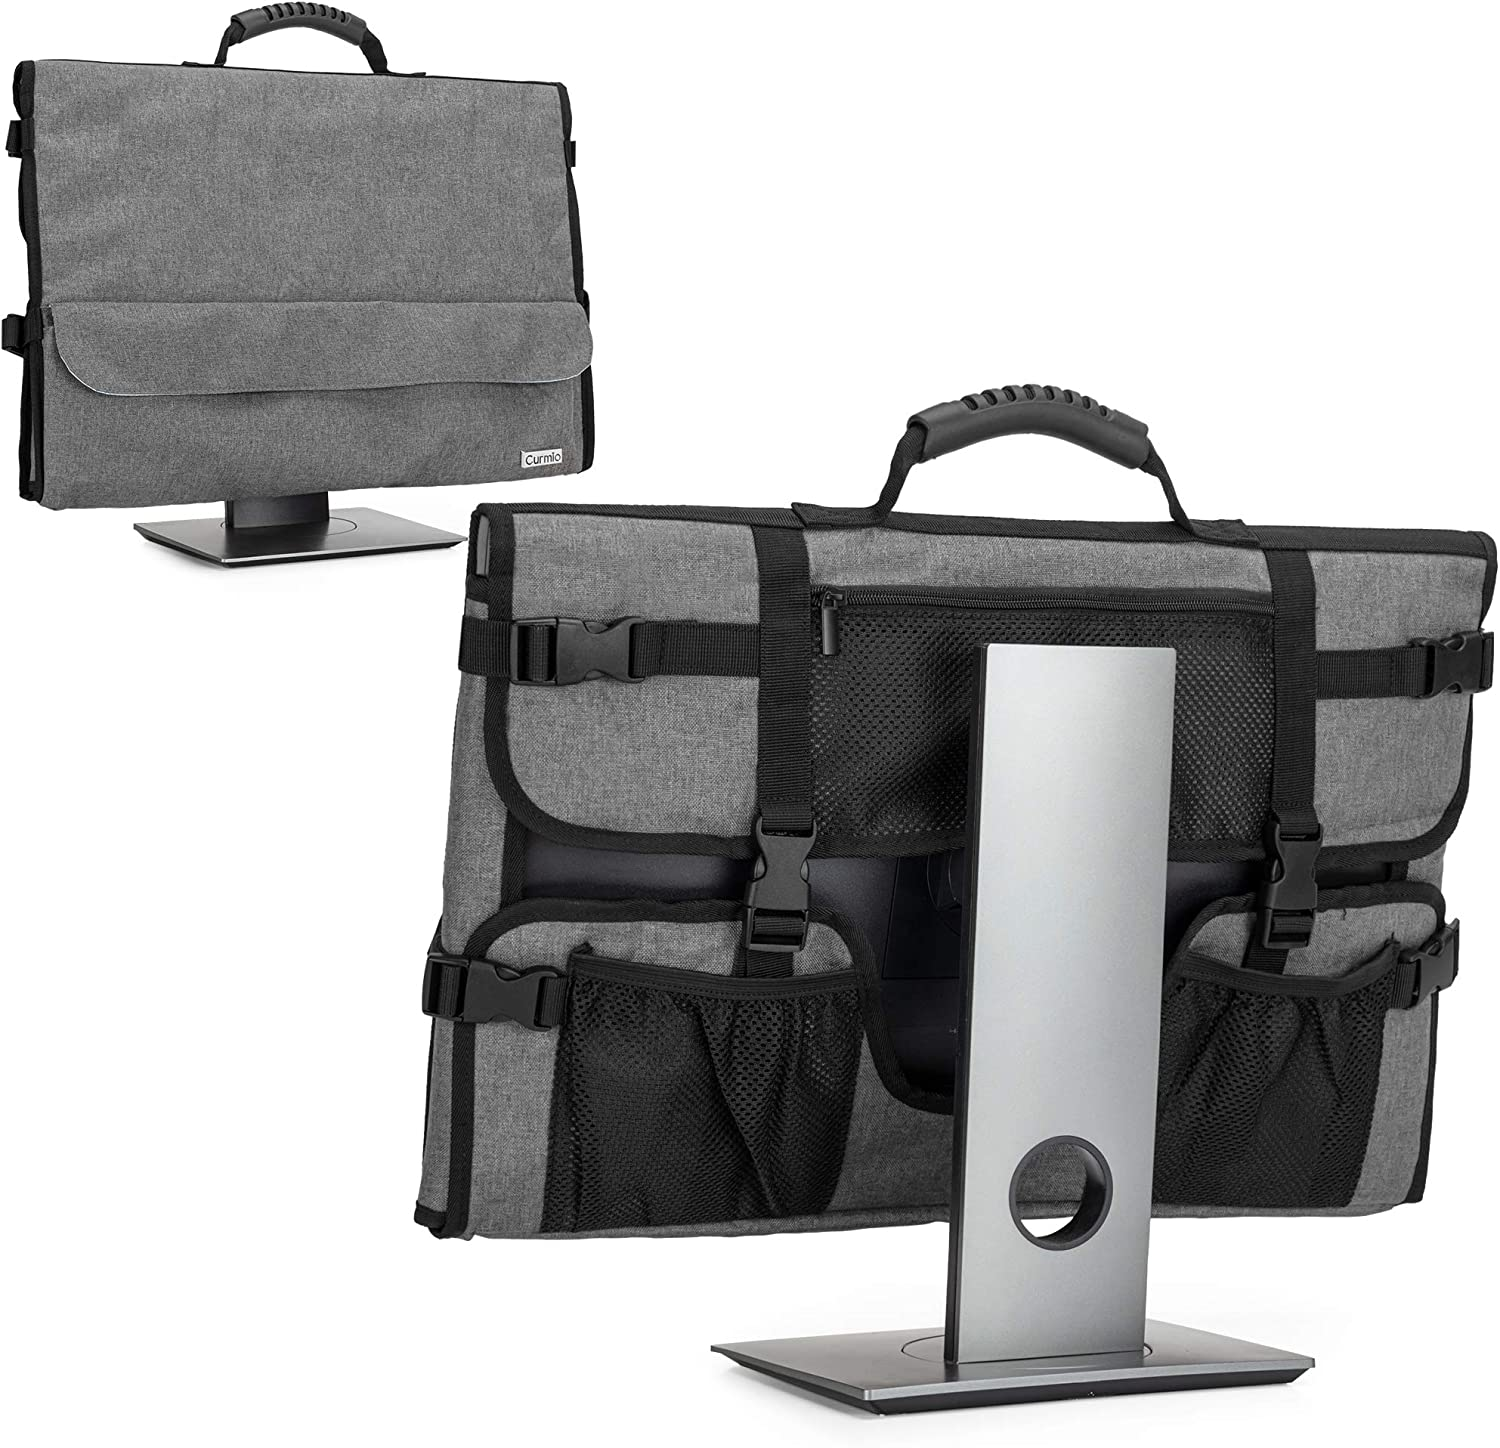 CURMIO Computer Monitor Carrying Case for 24 Inch Monitor, Computer Screen Dust Cover with Rubber Handle and Pockets, Gray (Patented Design)